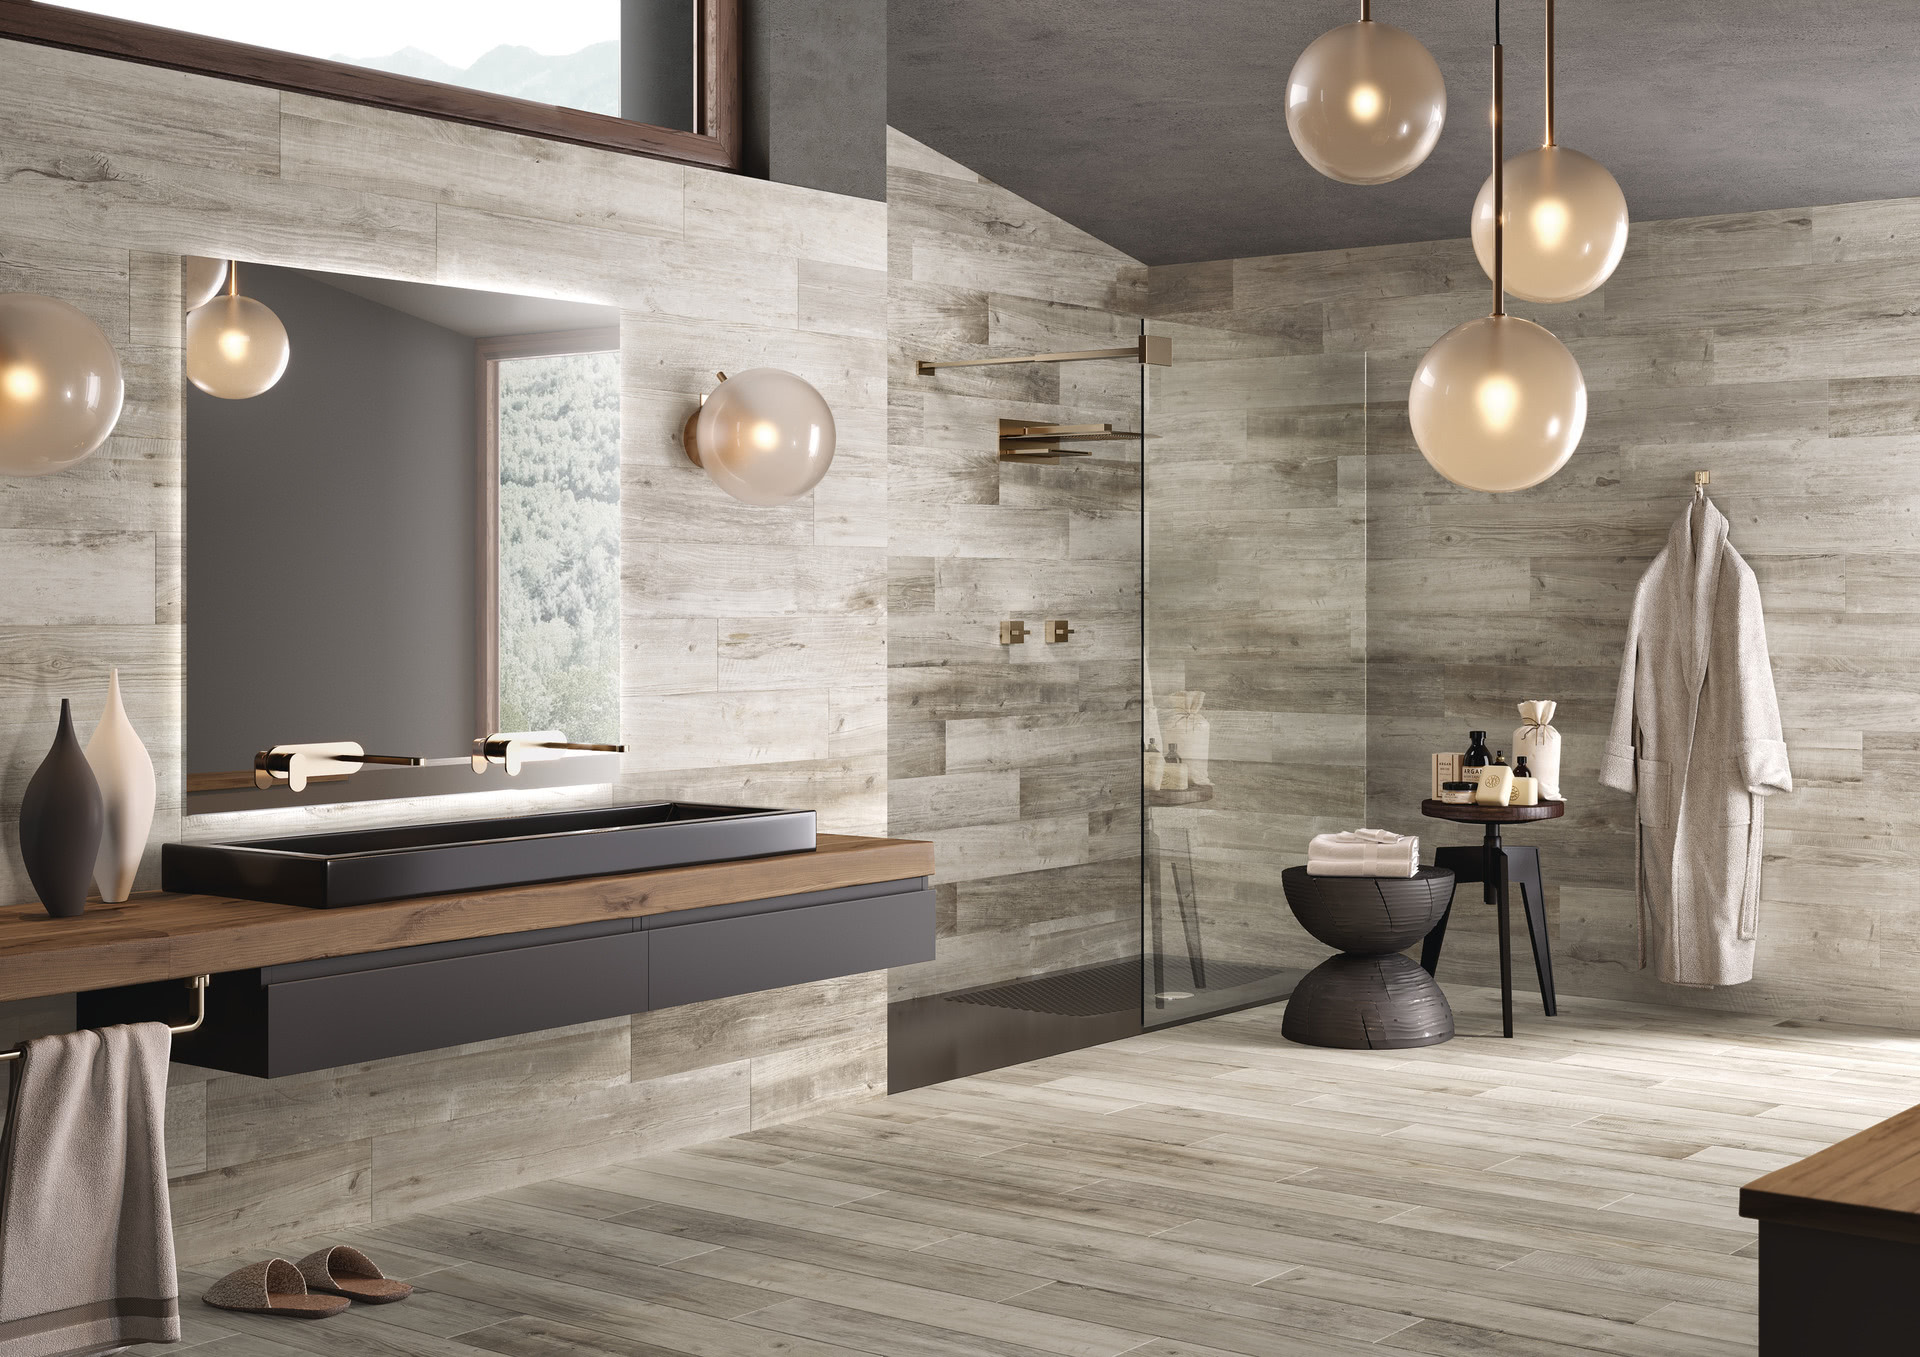 bc tile floor covering syracuse in